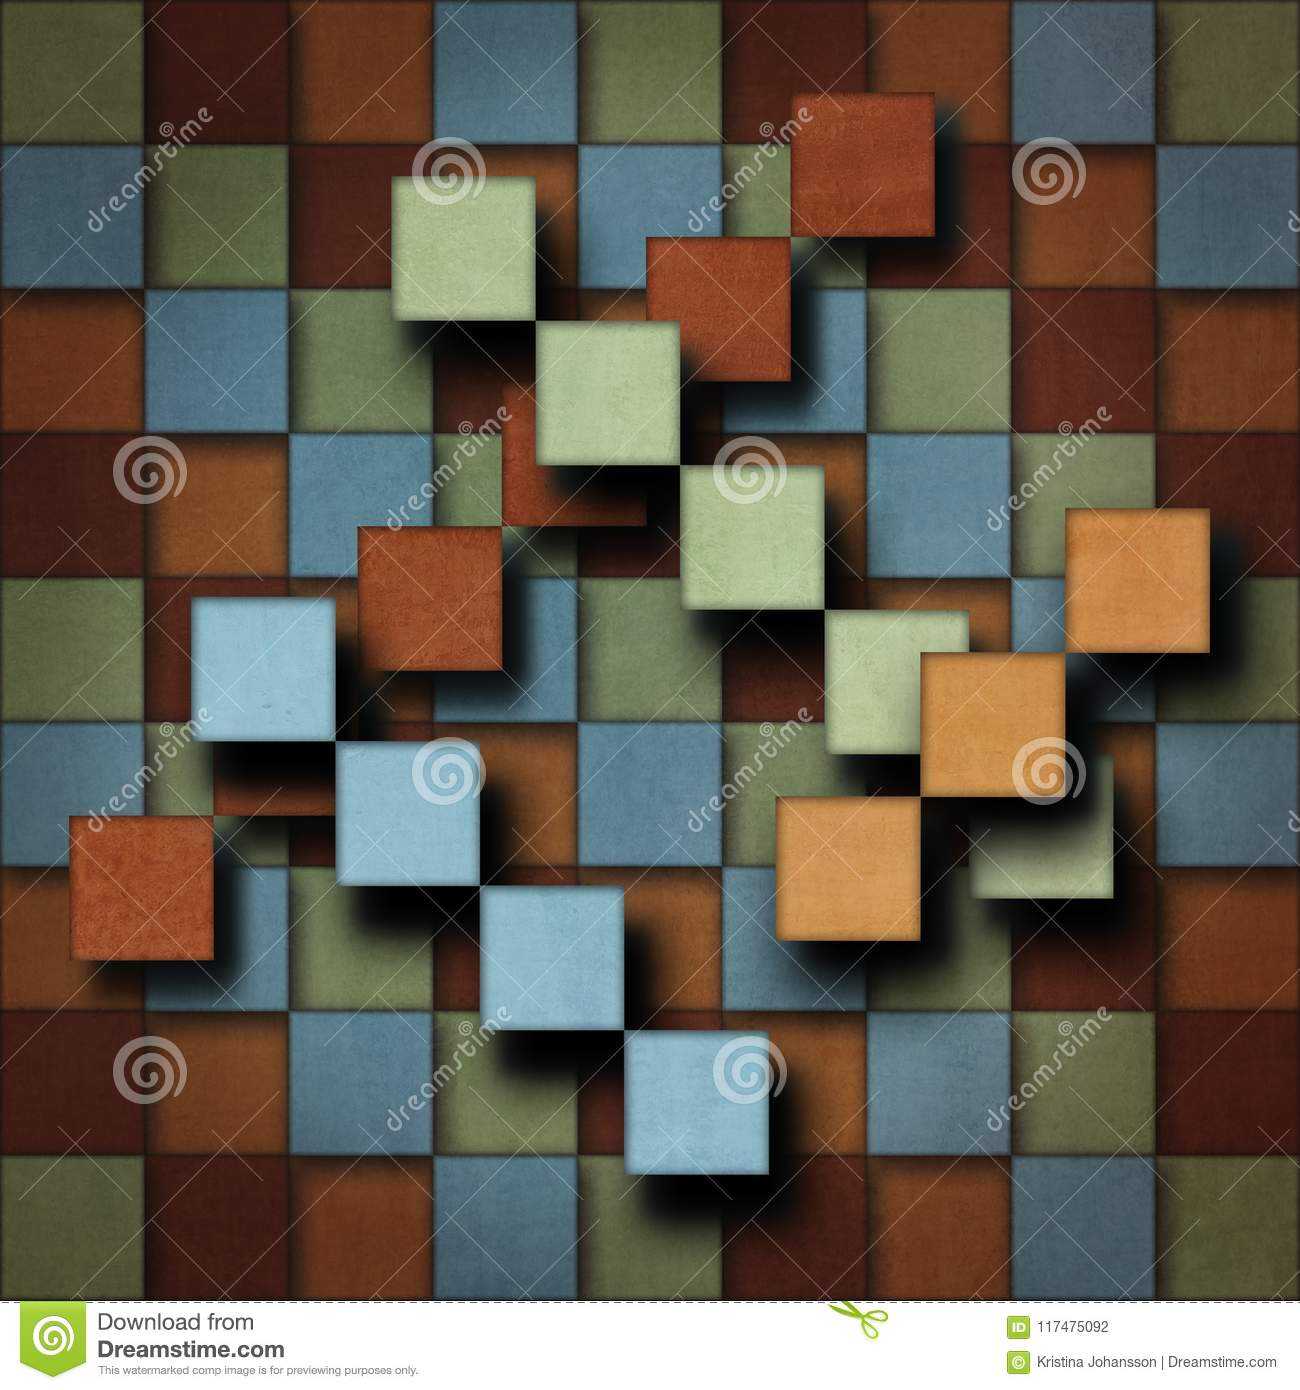 abstract square pattern in subdued retro colors with an illusion of flying squares stock illustration illustration of green multicolored 117475092 dreamstime com